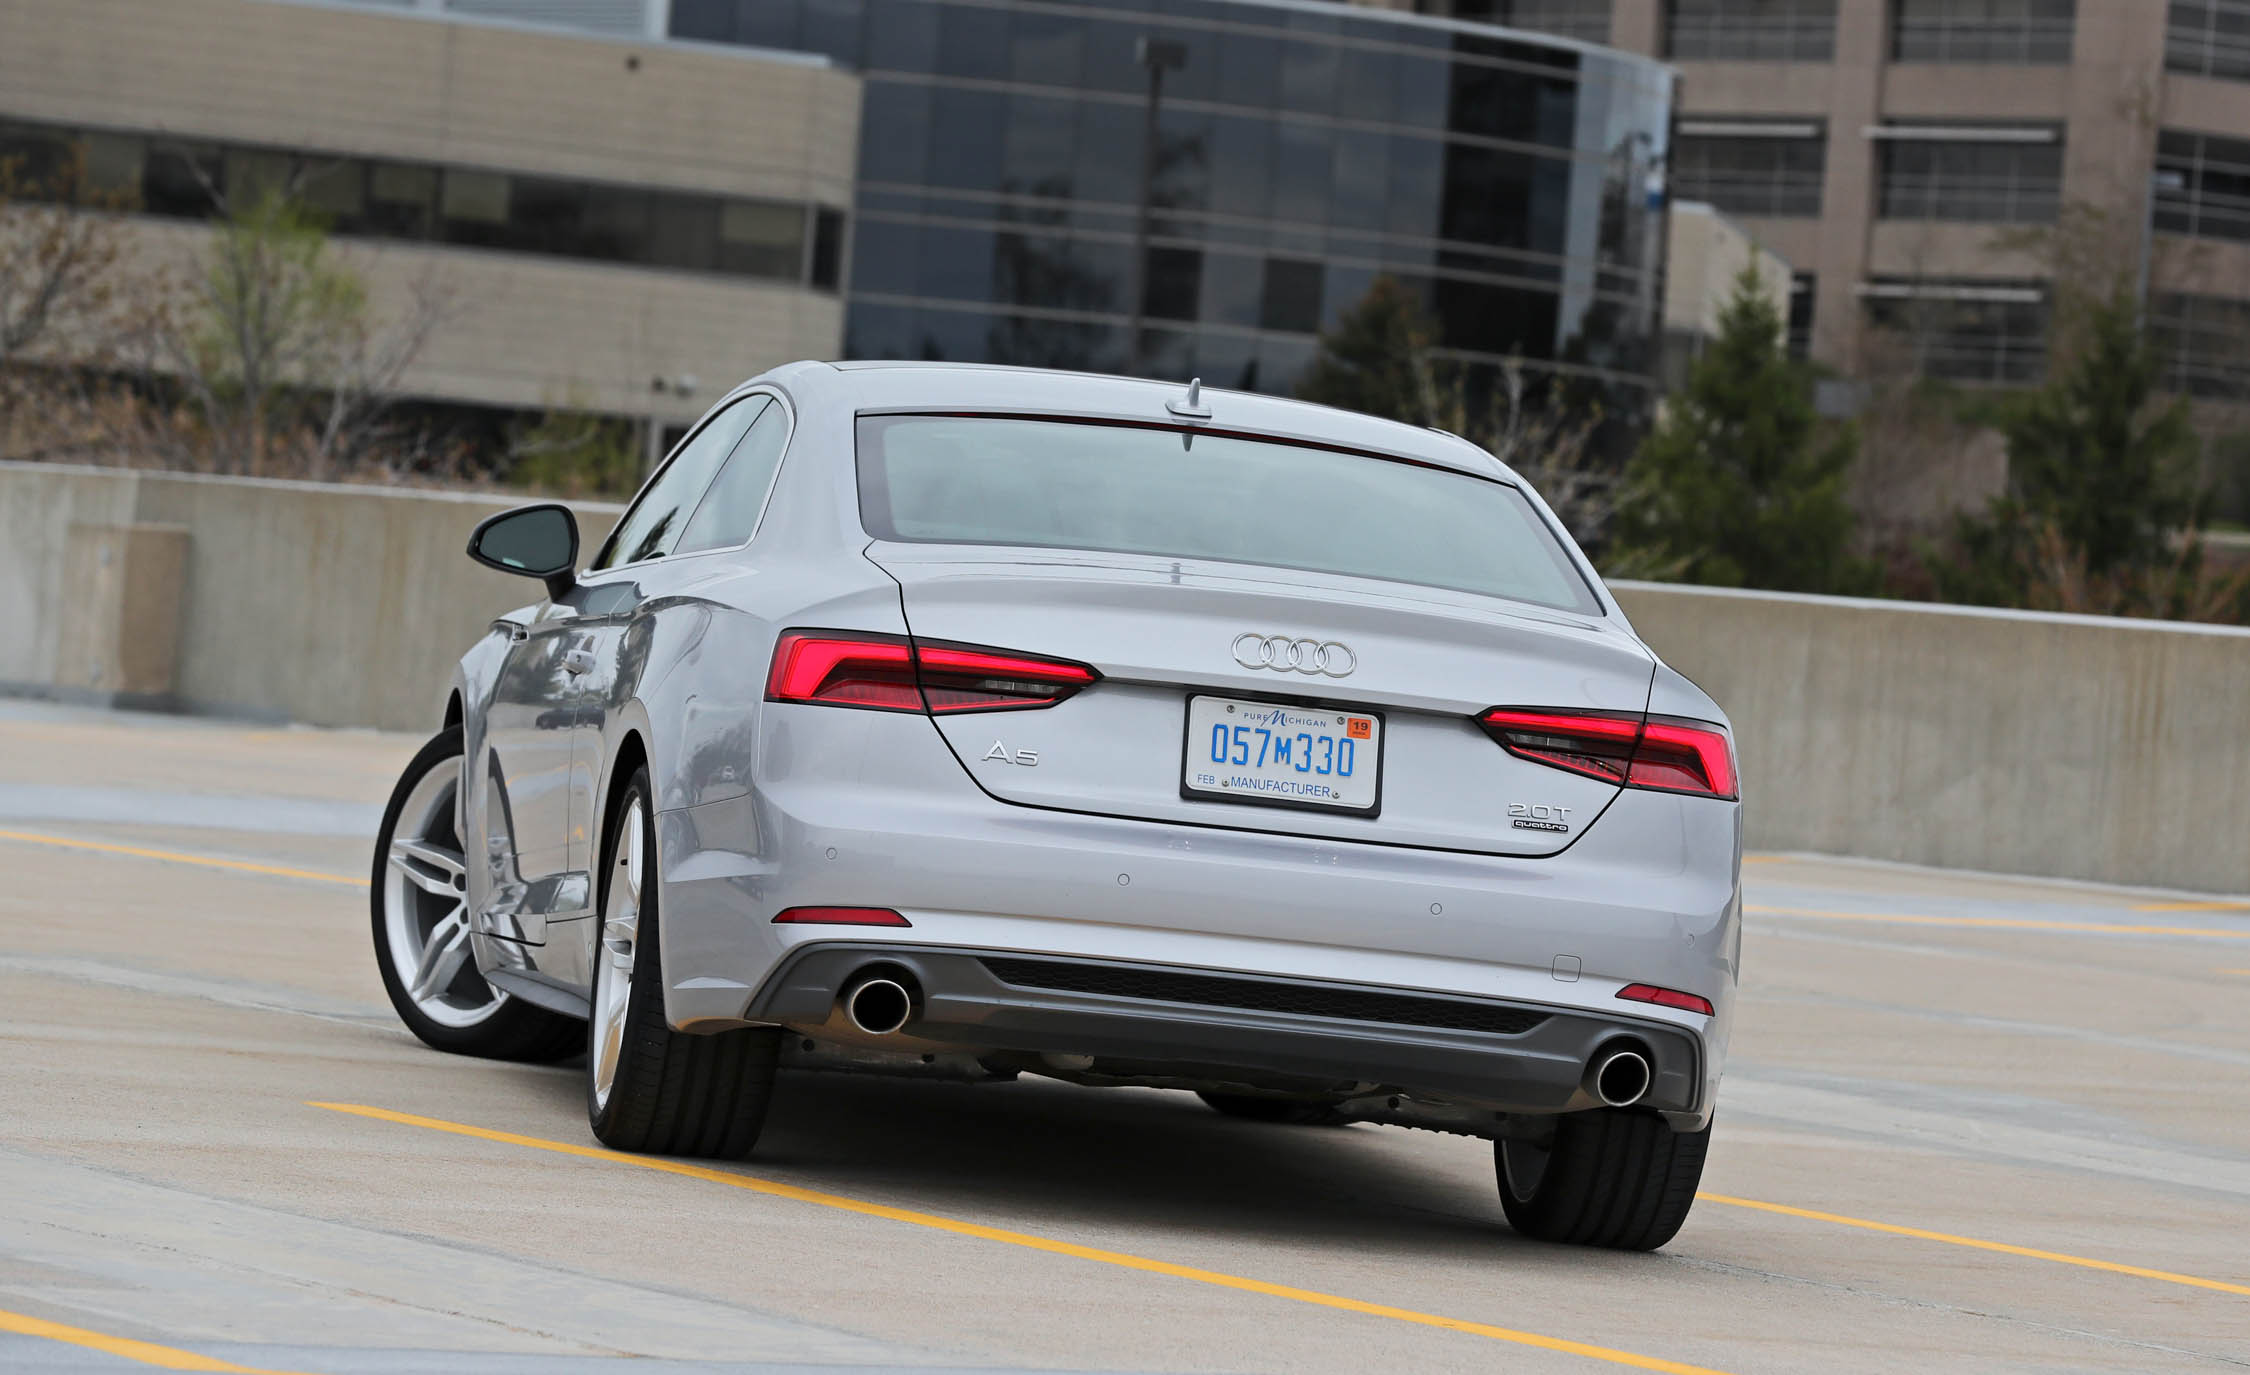 2018 Audi A5 Coupe Exterior Rear Corner (Photo 6 of 50)